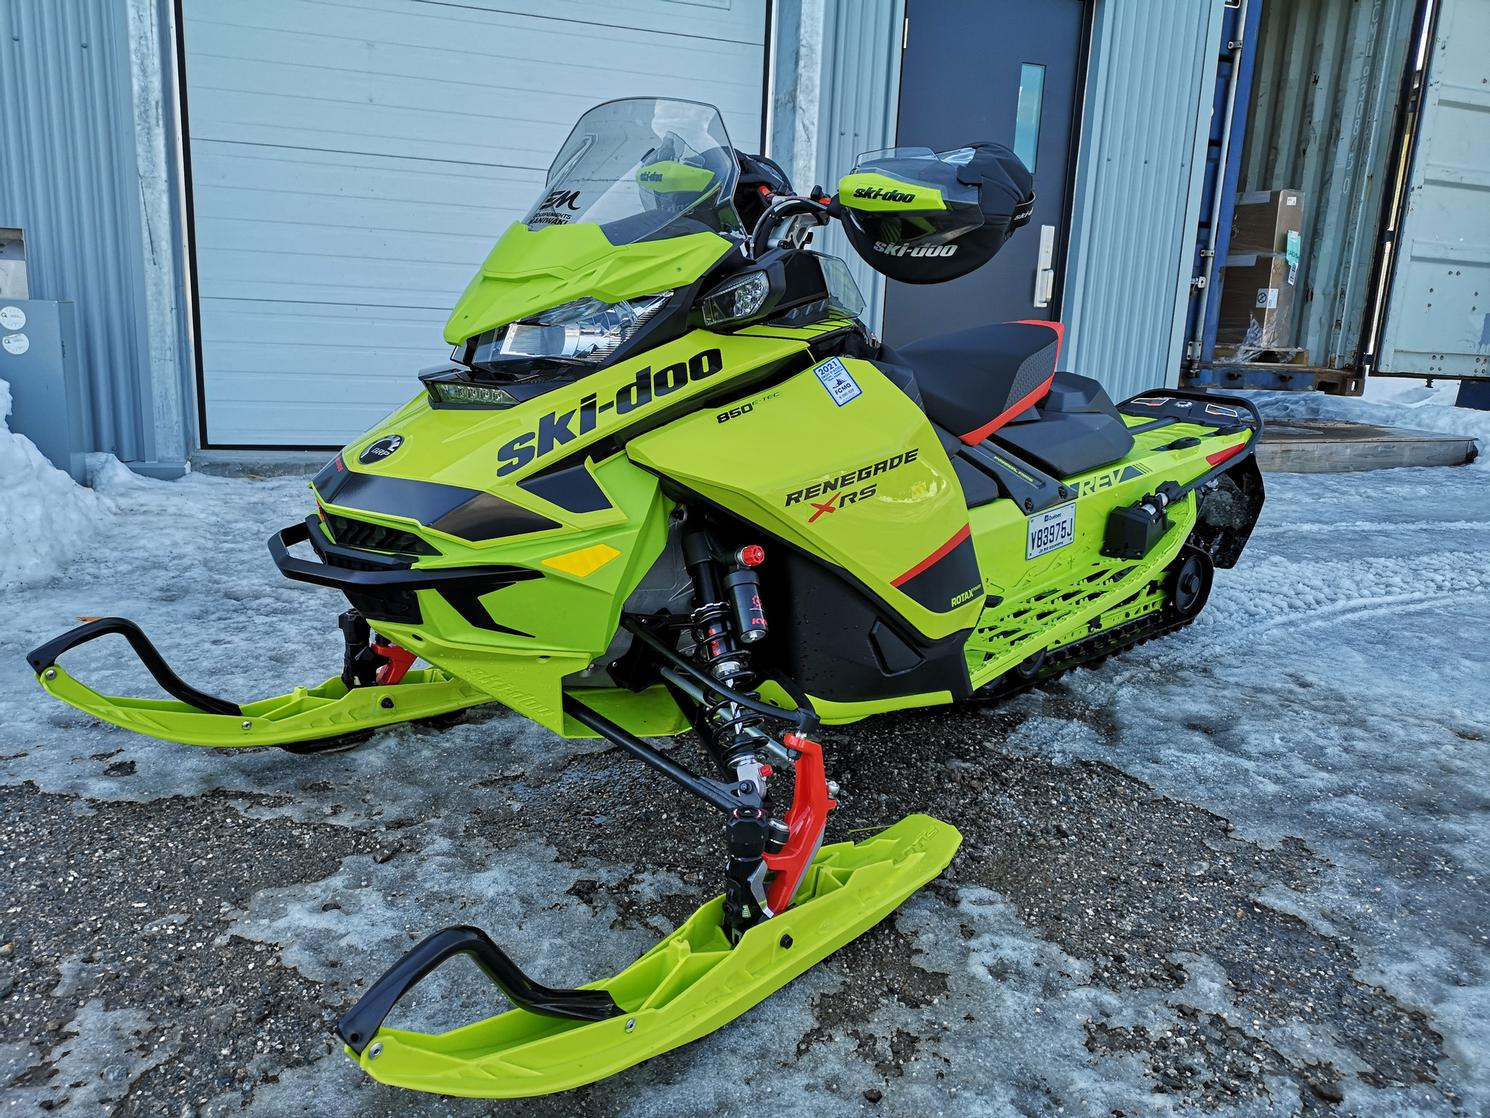 2020 Ski-Doo Renegade XRS 850 etec Quick ajust package